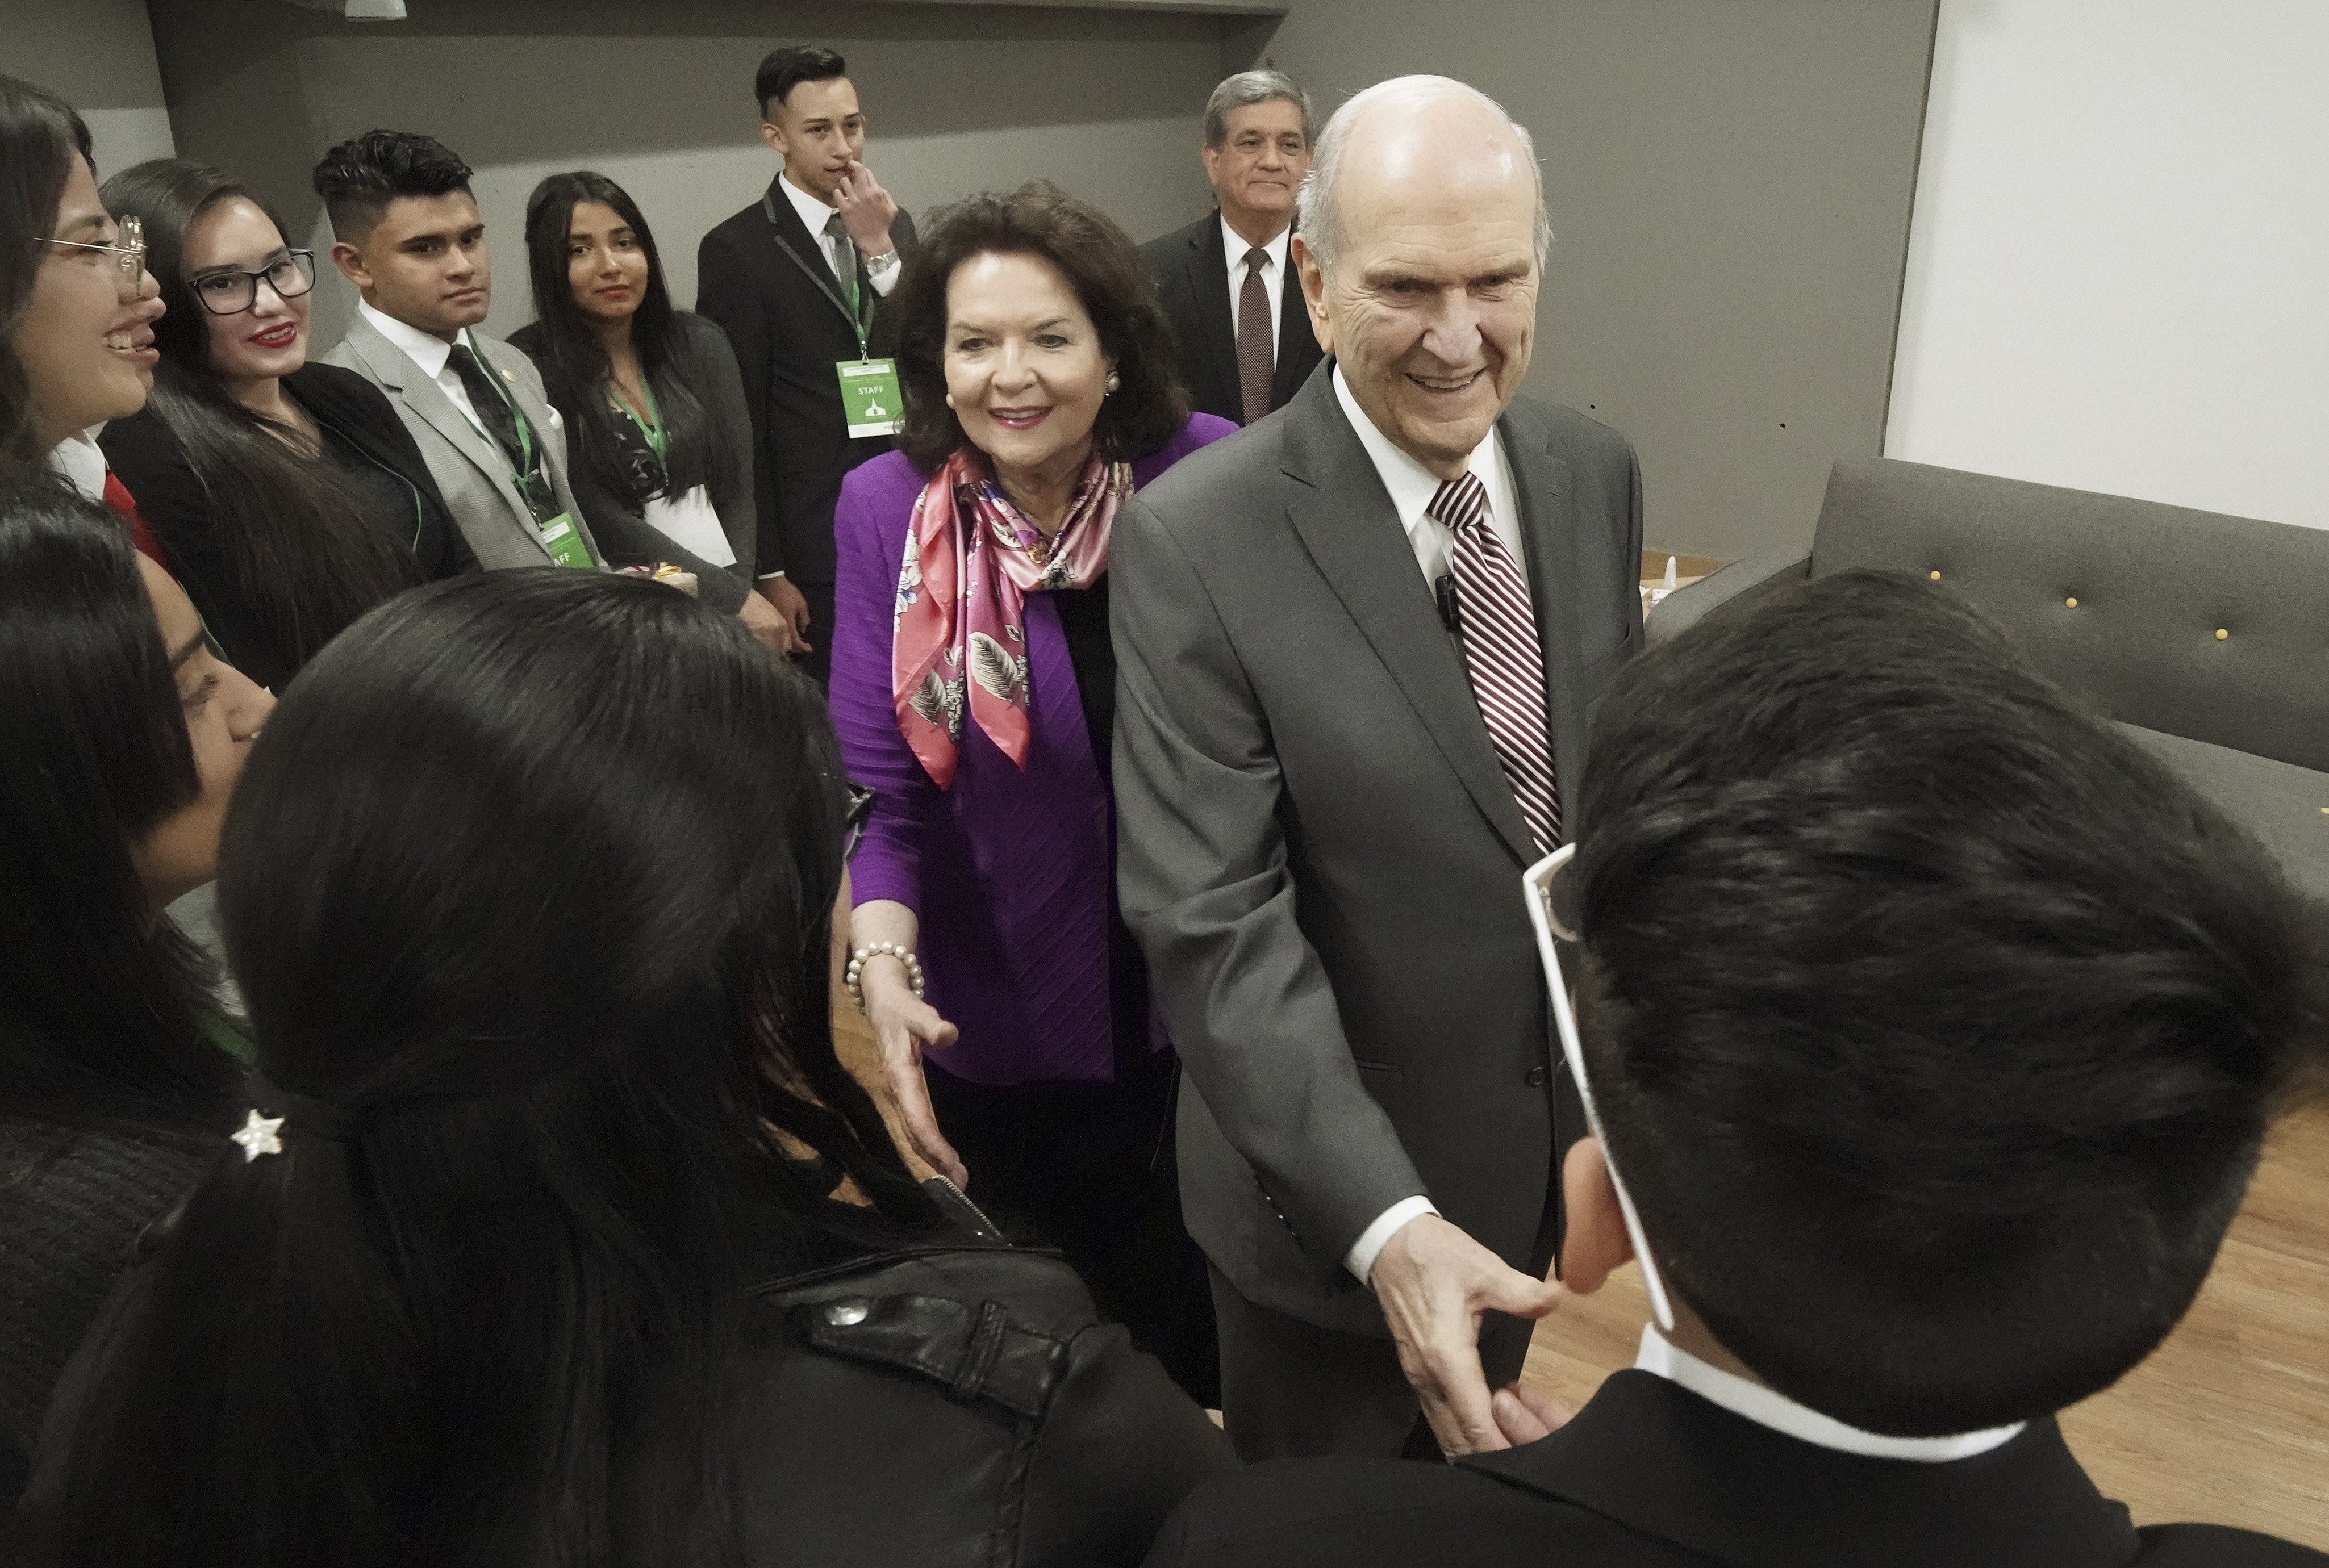 President Russell M. Nelson of The Church of Jesus Christ of Latter-day Saints and his wife, Sister Wendy Nelson, meet with youth in Bogota, Colombia, on Sunday, Aug. 25, 2019.